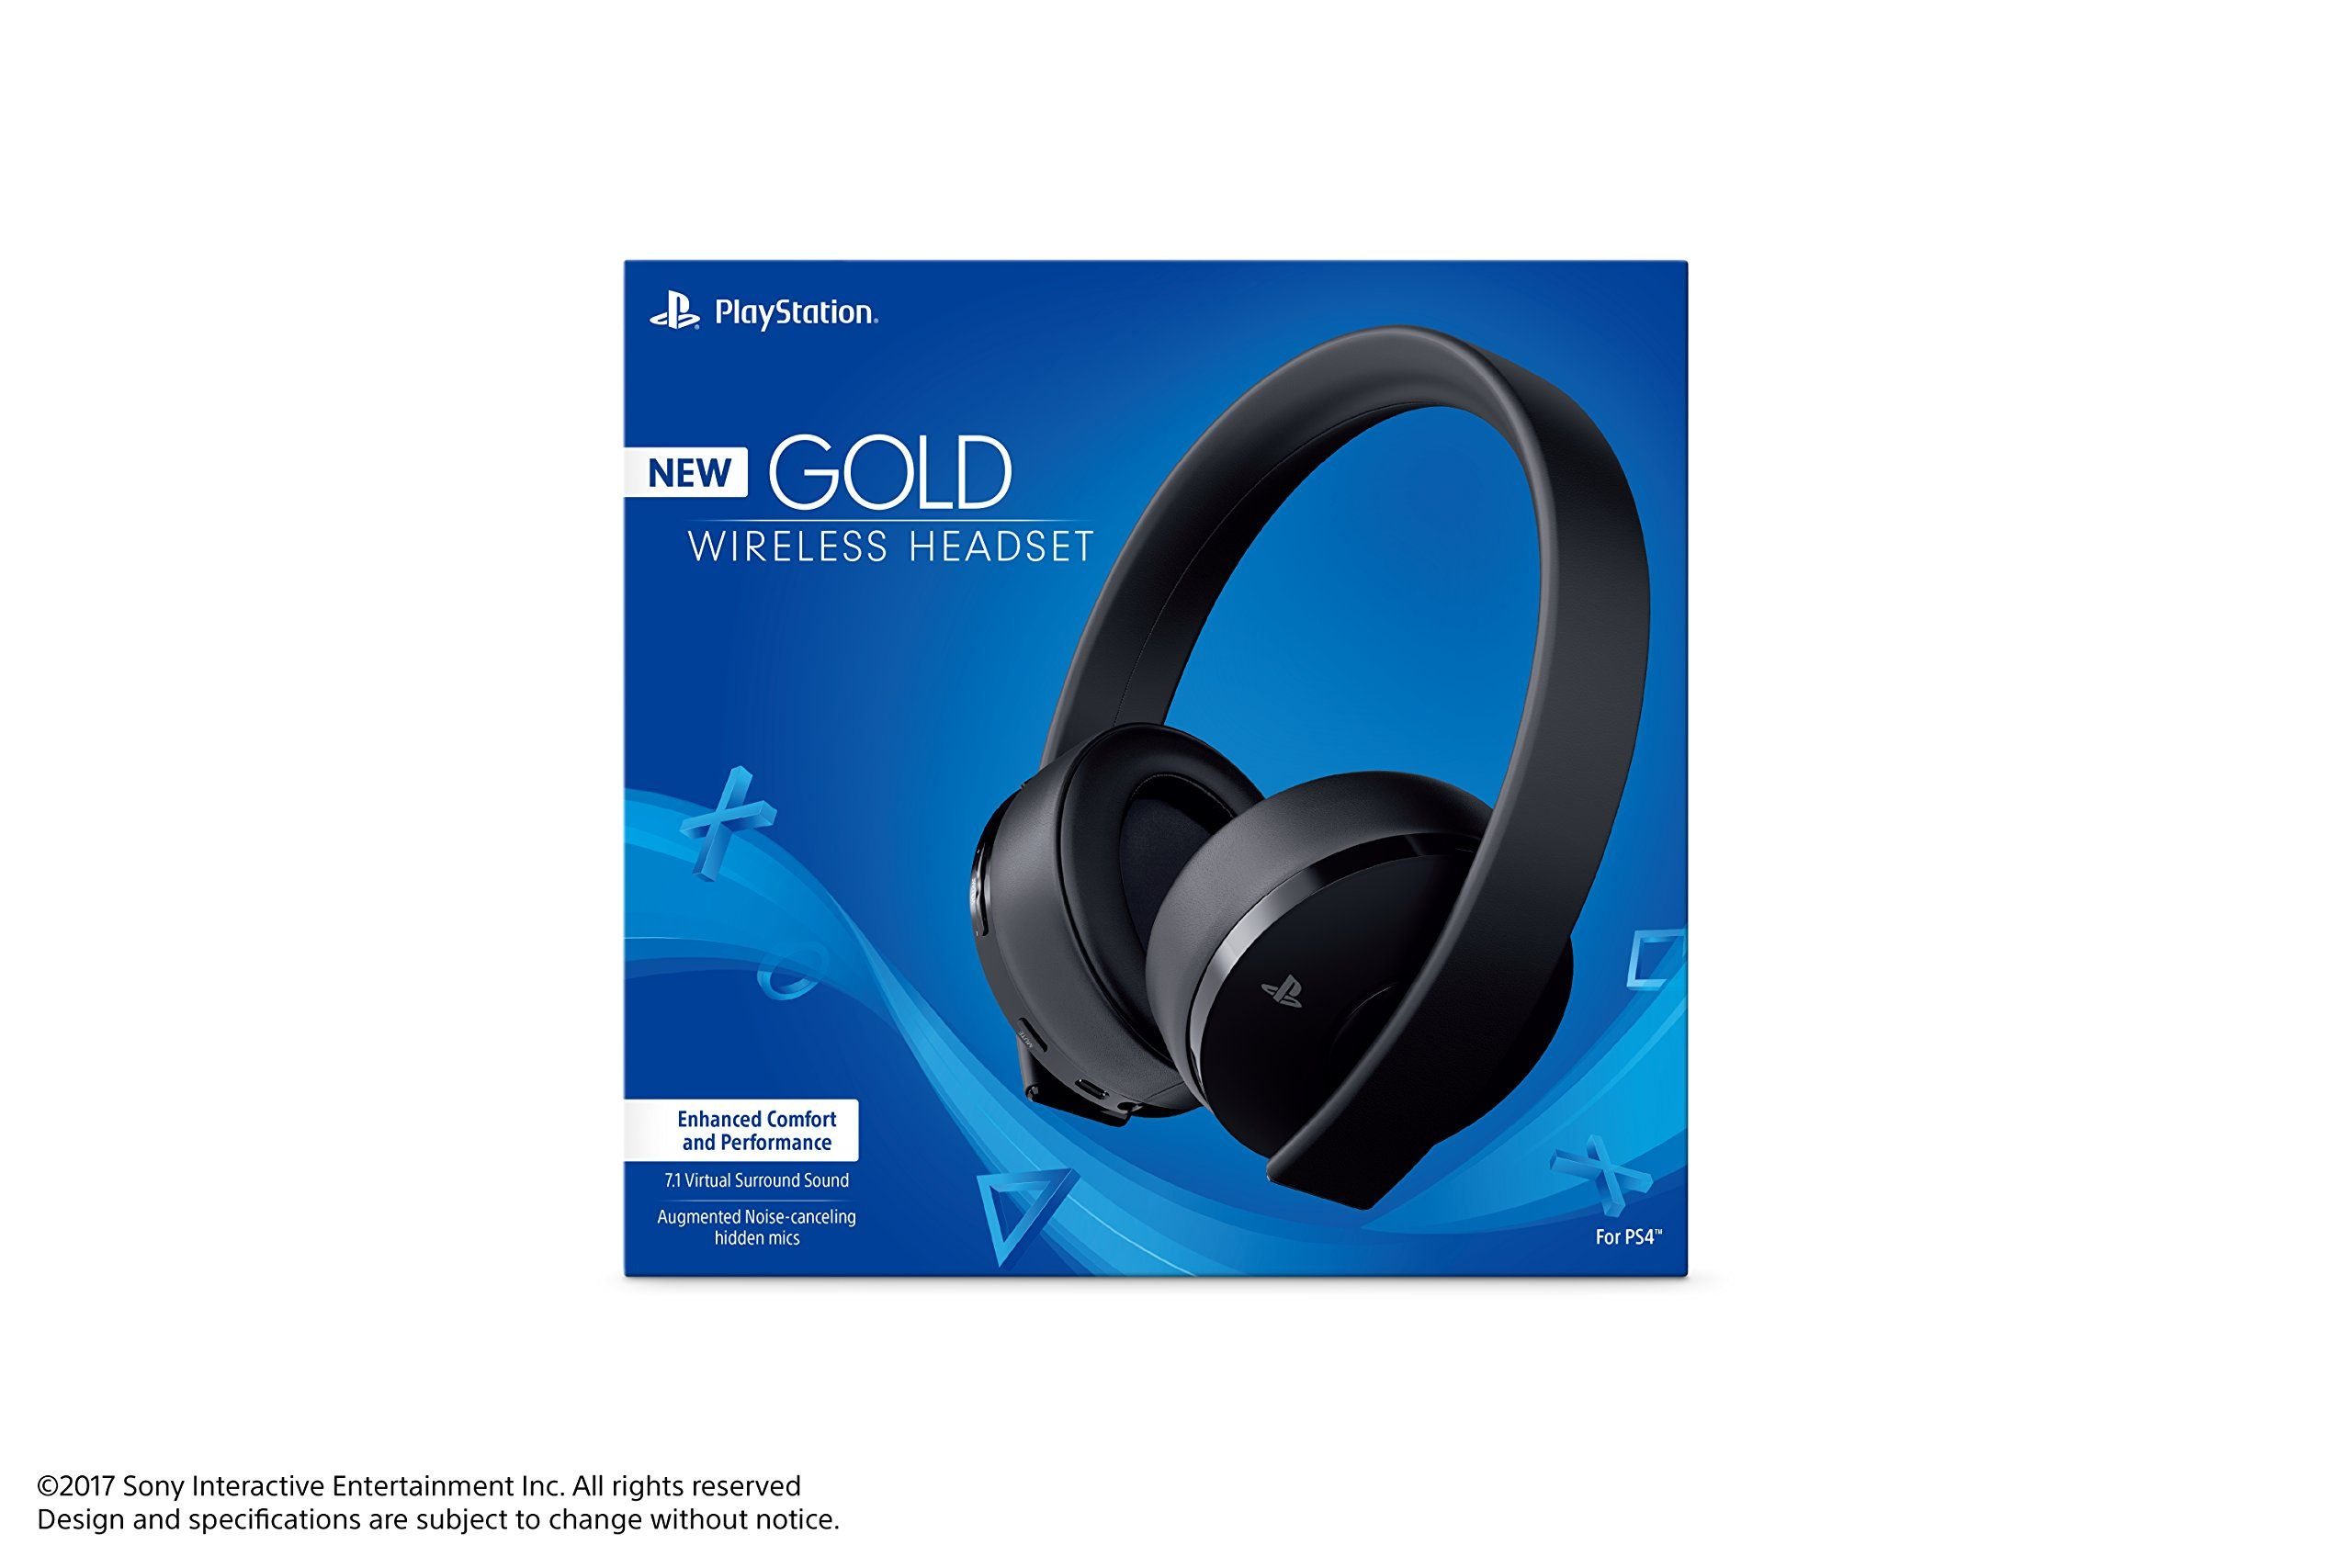 Playstation Gold Wireless Headset Playstation 4 Gold Playstation Headset Wireless Wireless Headset Playstation Gold Headset